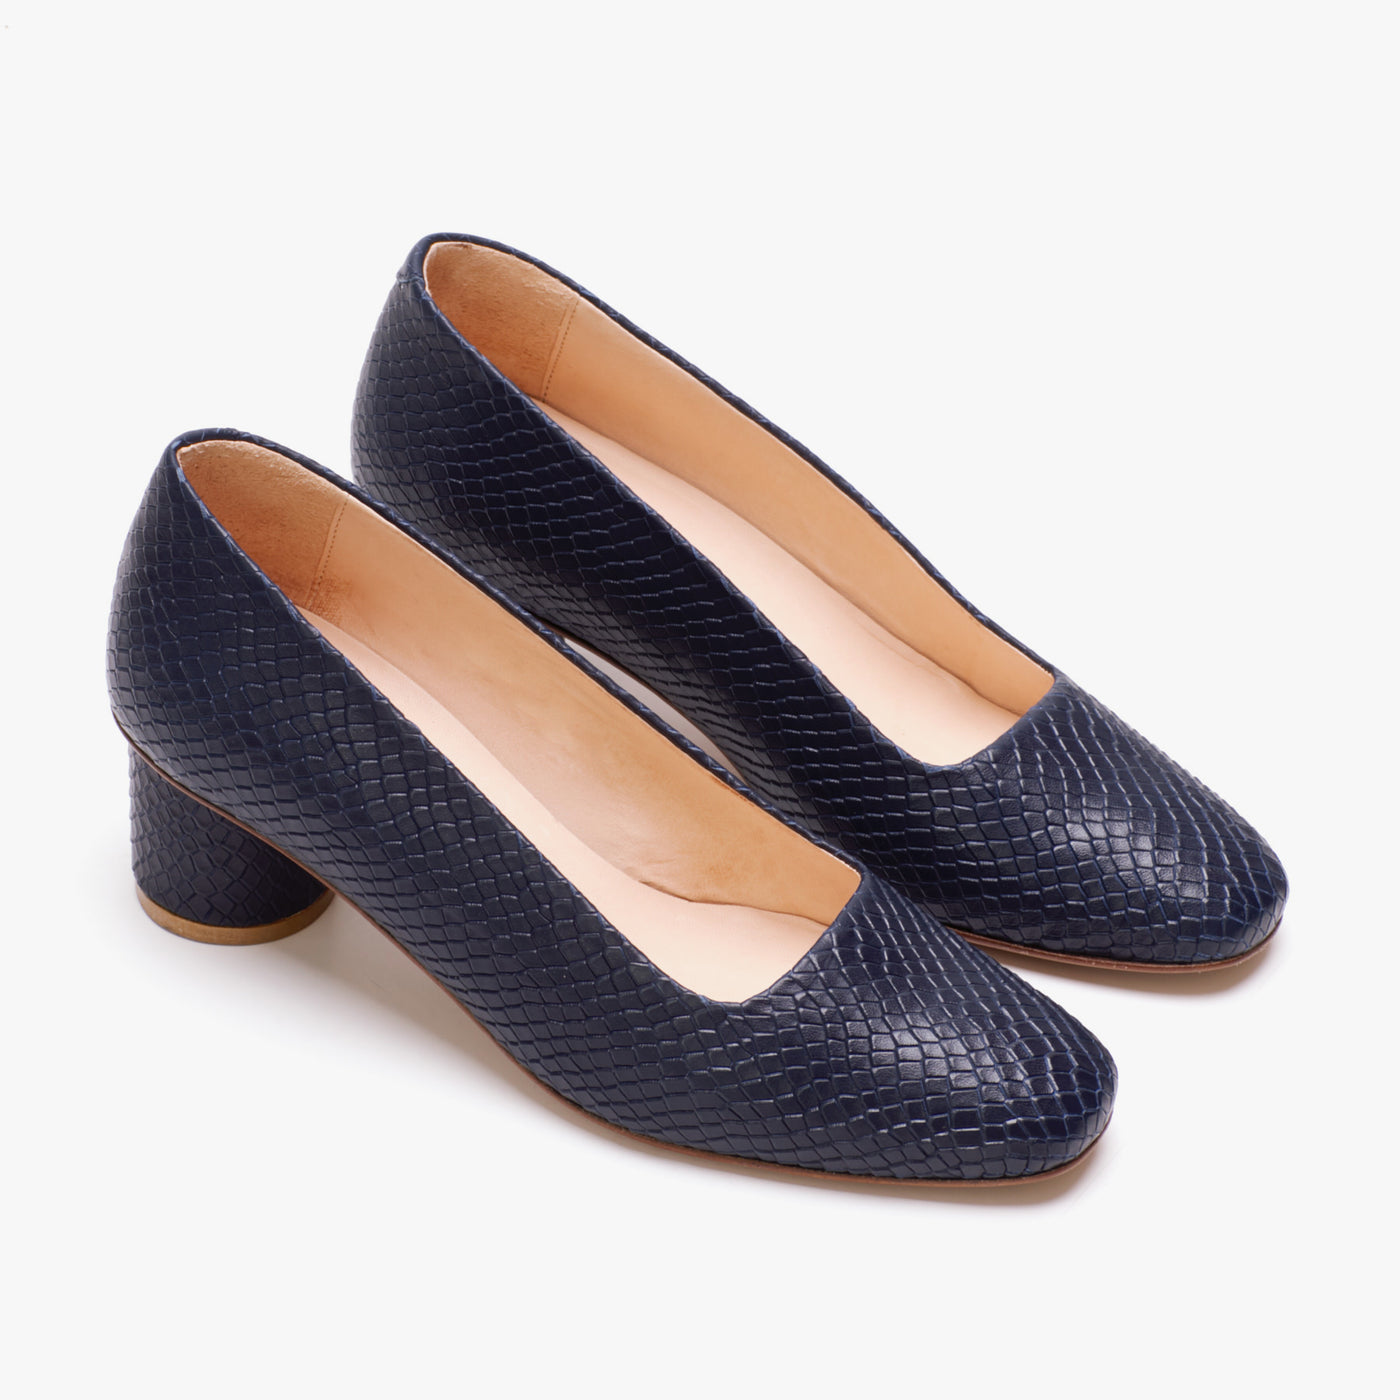 KIIA PUMP NAVY LIZARD